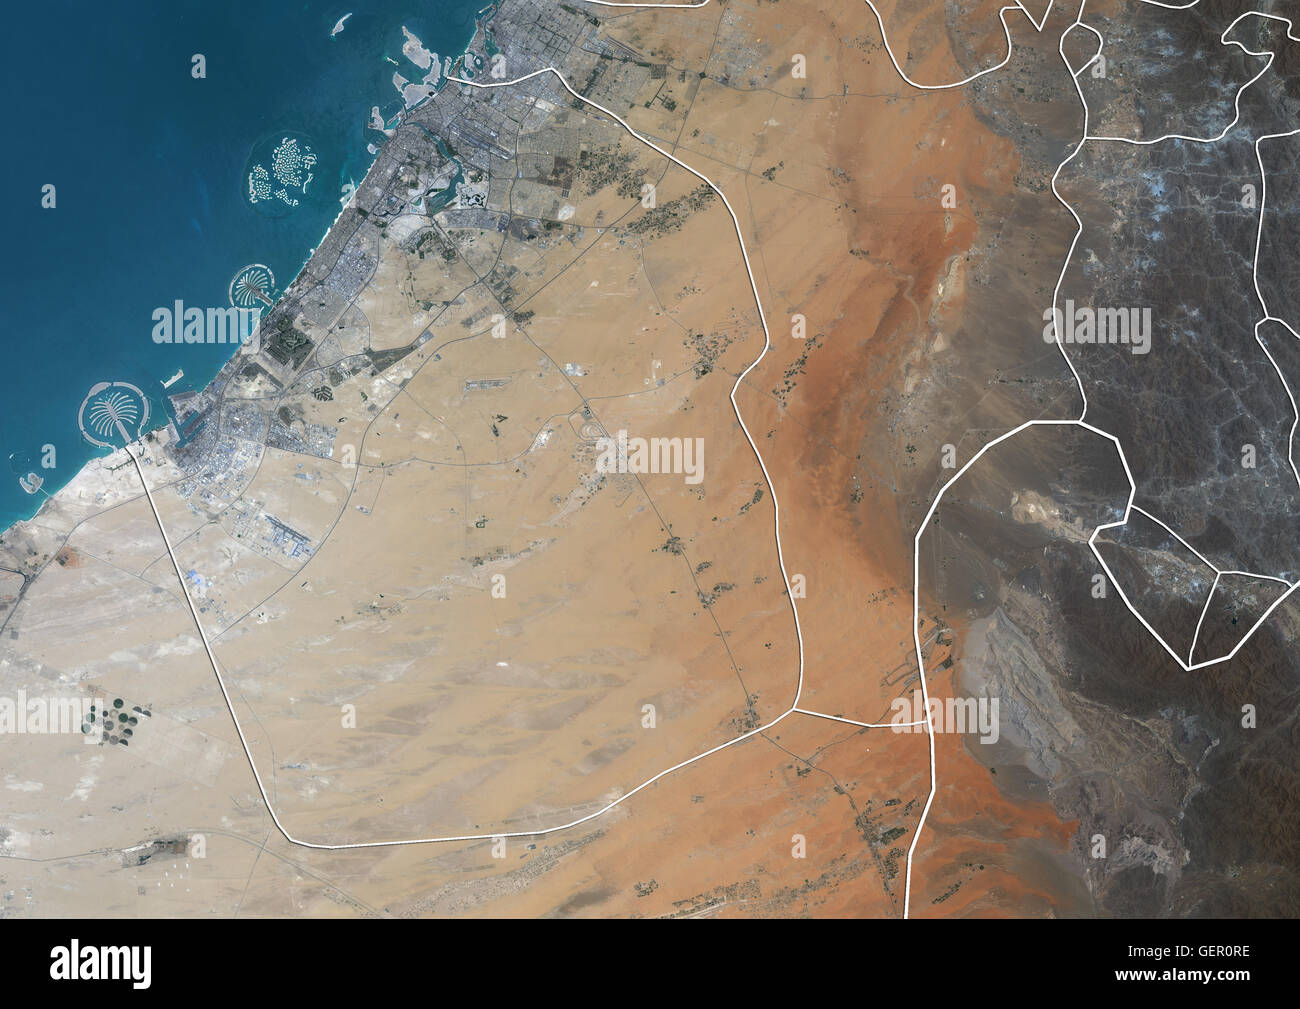 Satellite View Of The Emirate Of Dubai United Arab Emirates With - World satellite map 2014